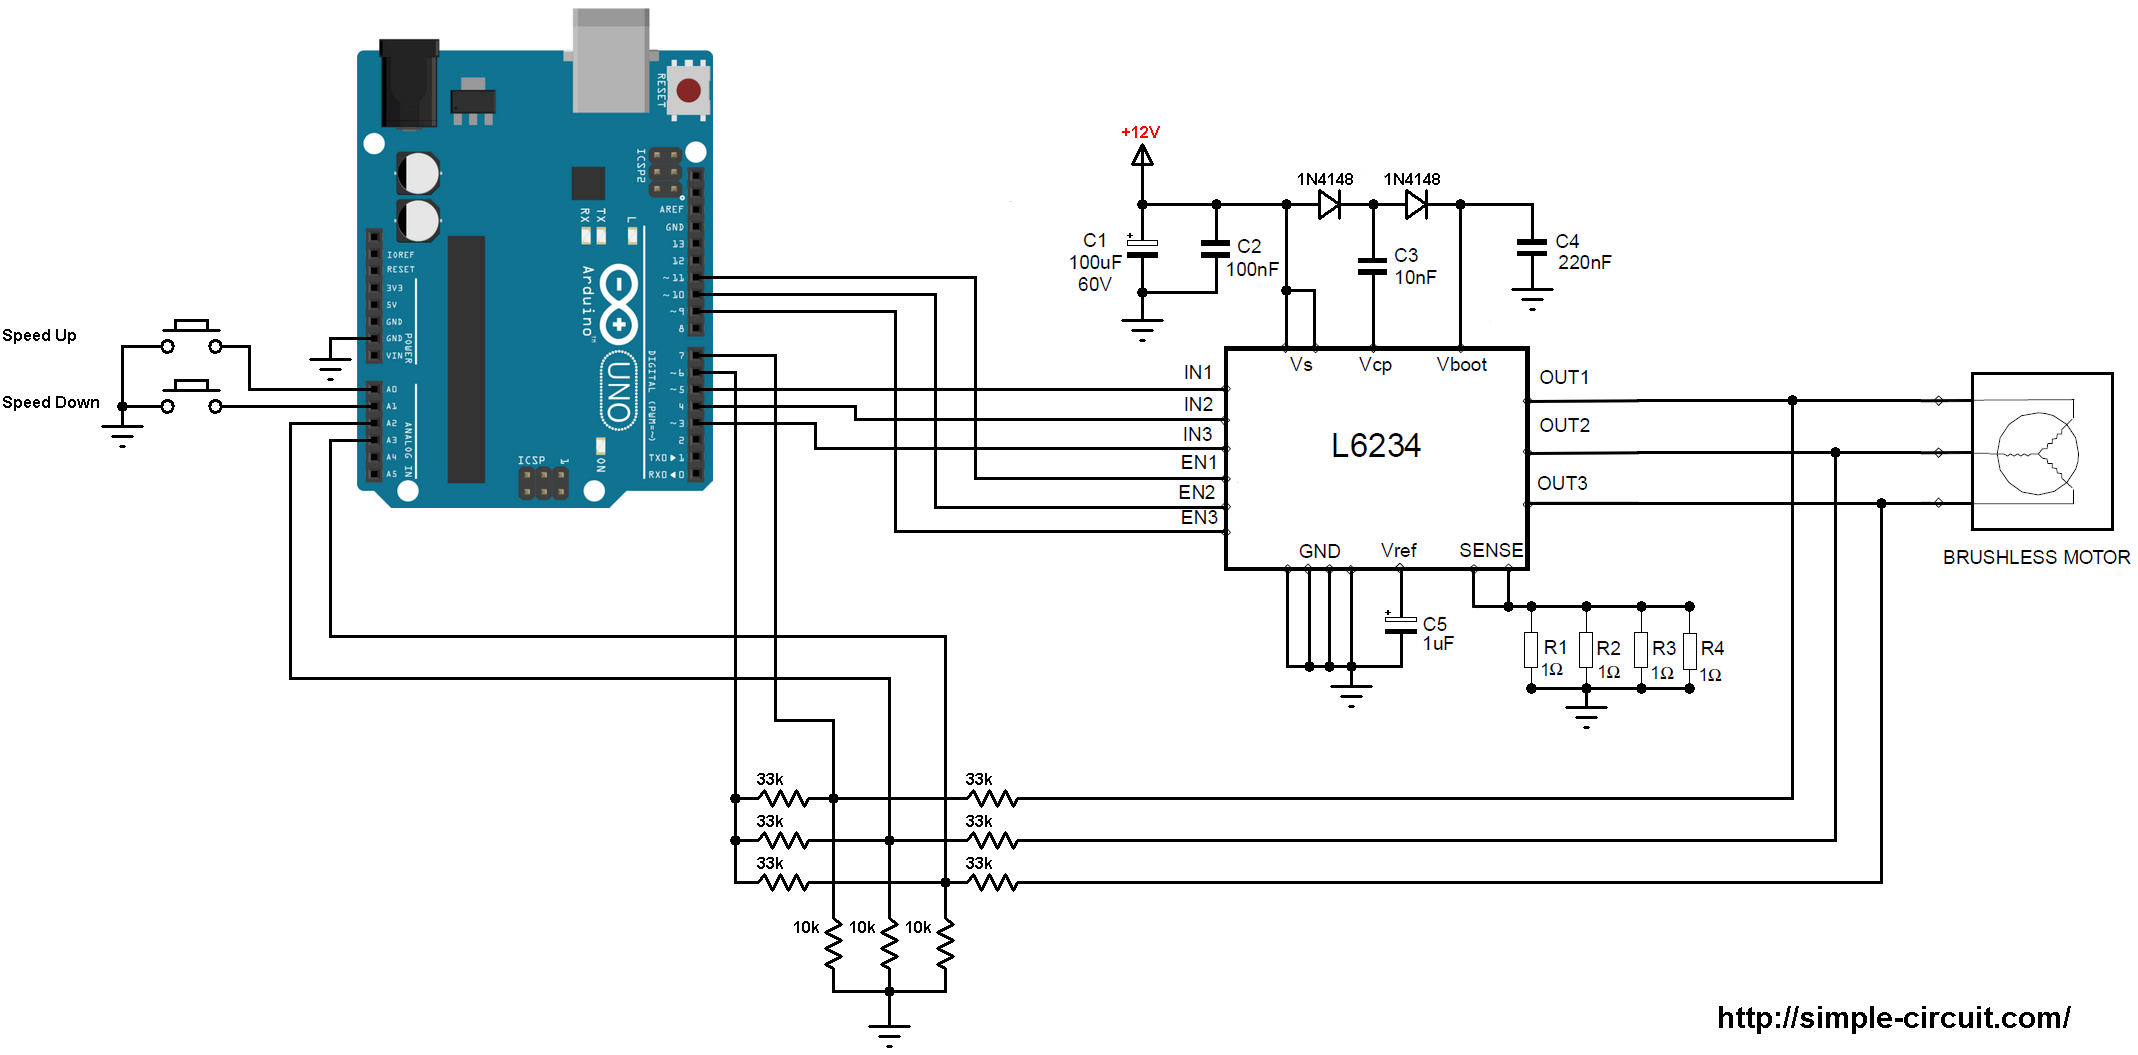 Hpm Drive System Setup additionally Showatt in addition Bridge Circuit together with Wiring moreover Pic F Speed Control. on brushless esc circuit diagram